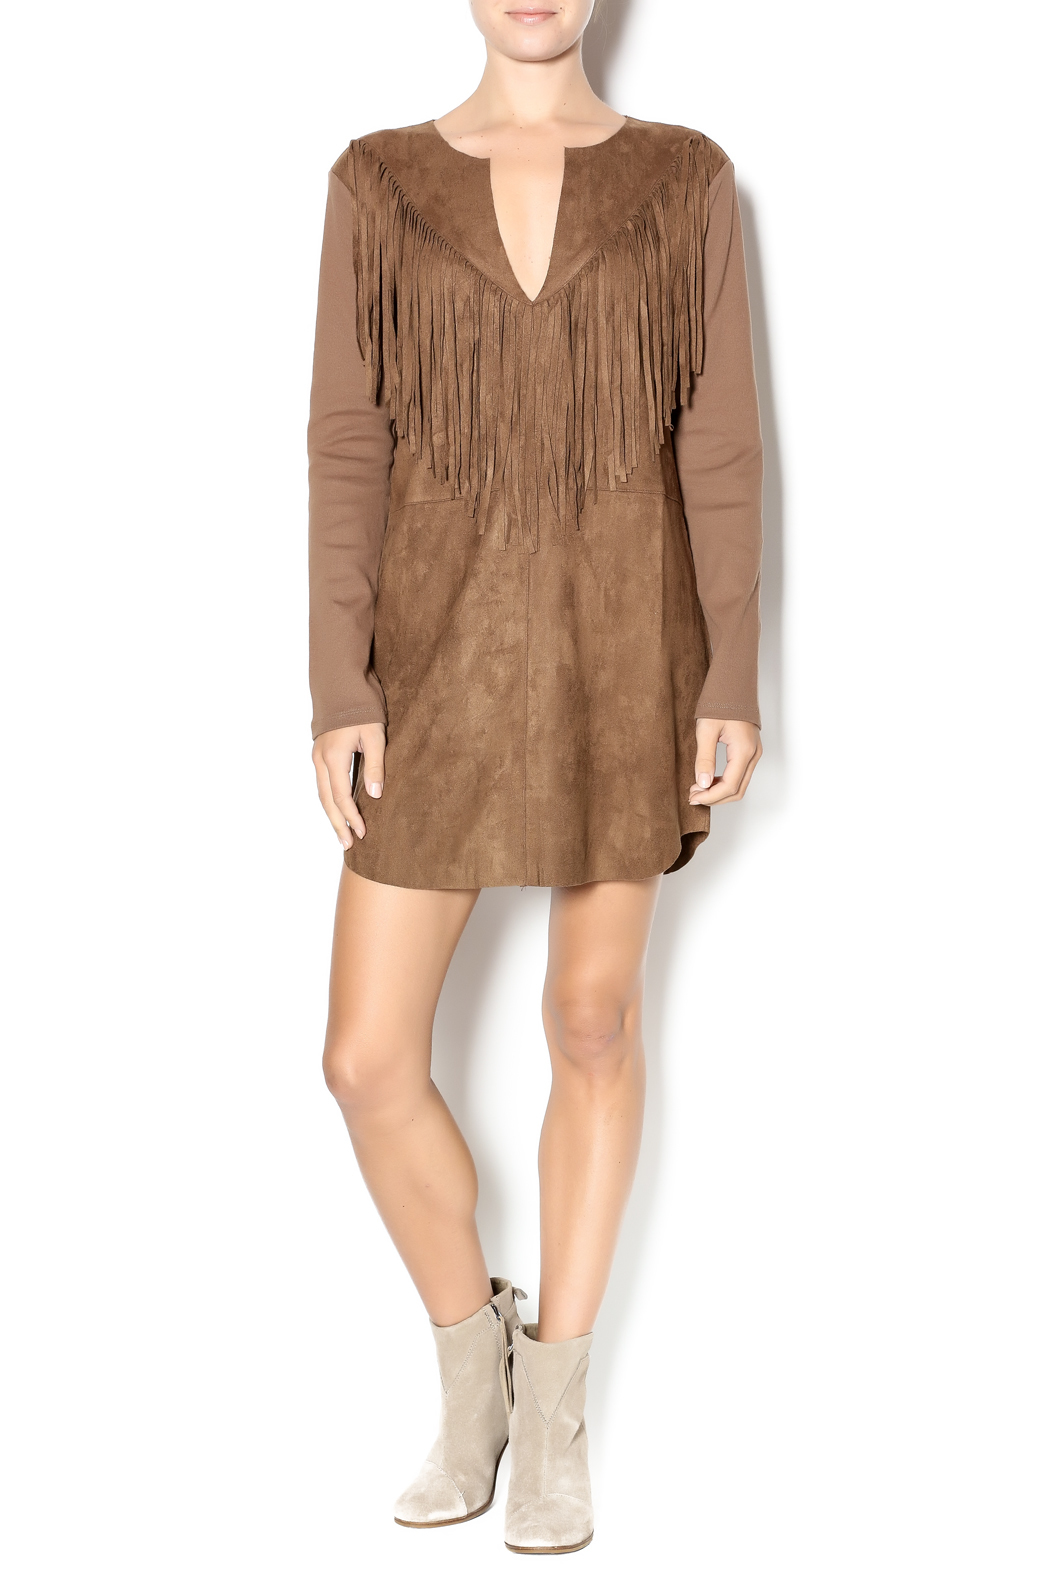 Ruby and Jenna Faux Suede Fringe Dress from Manhattan ...